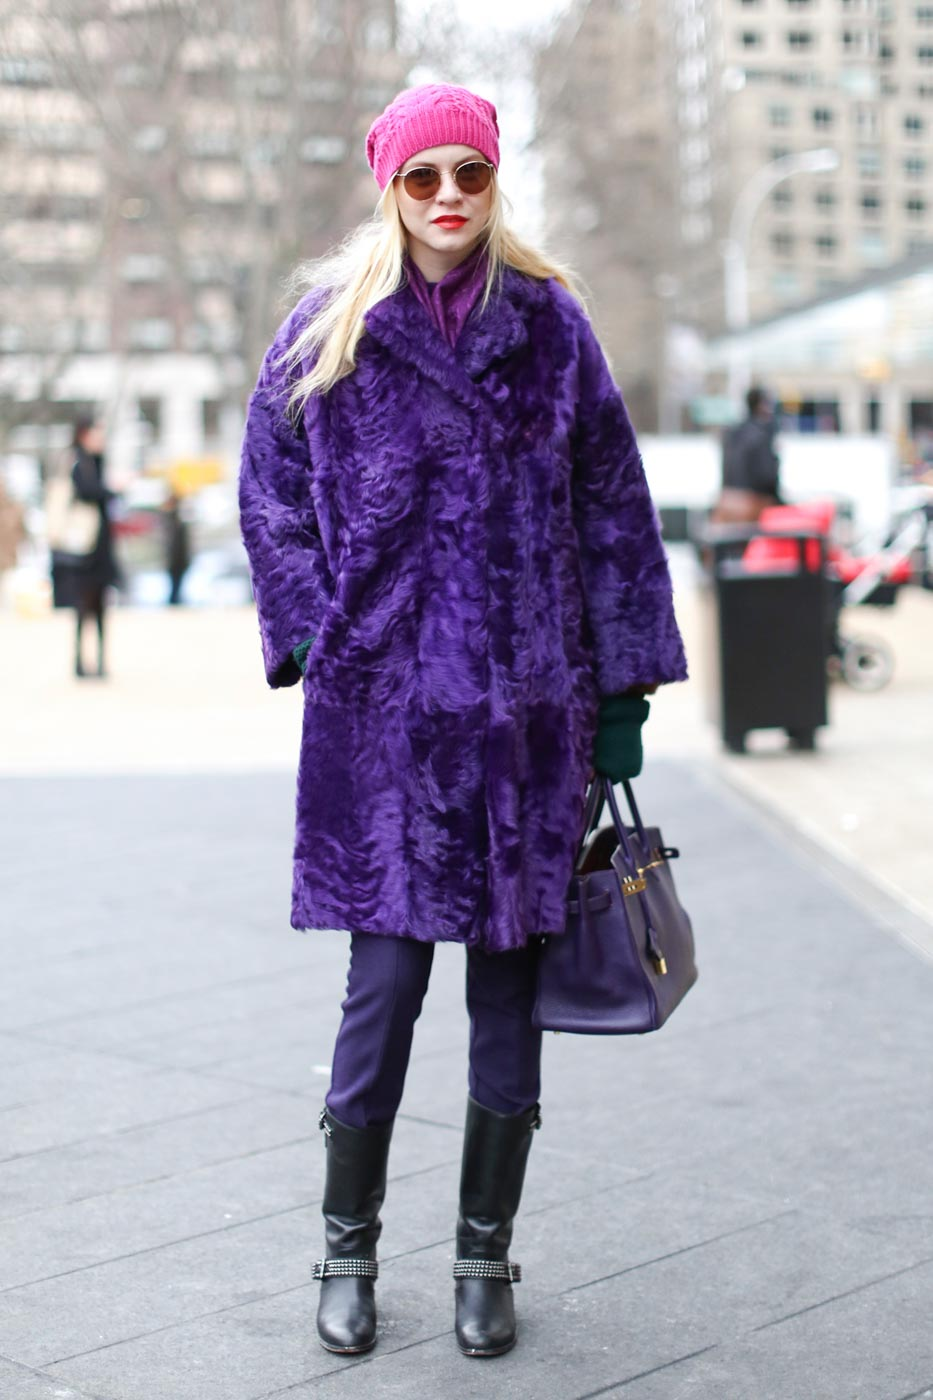 Giant purple coat with pink hat